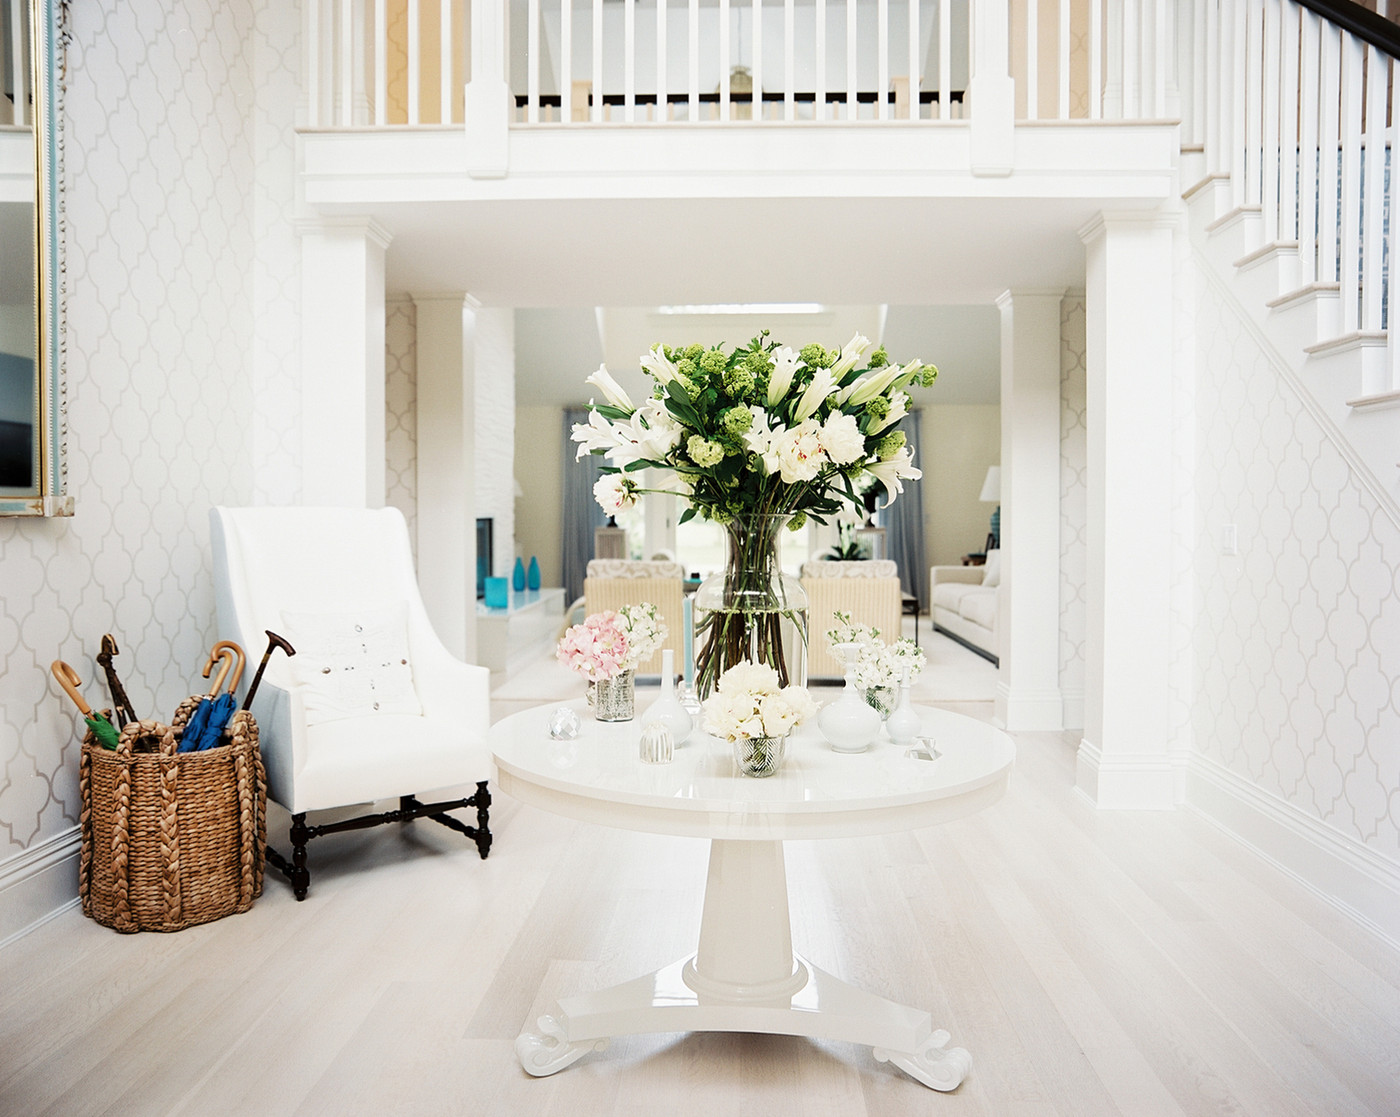 Foyer table with floral arrangements via Lonny